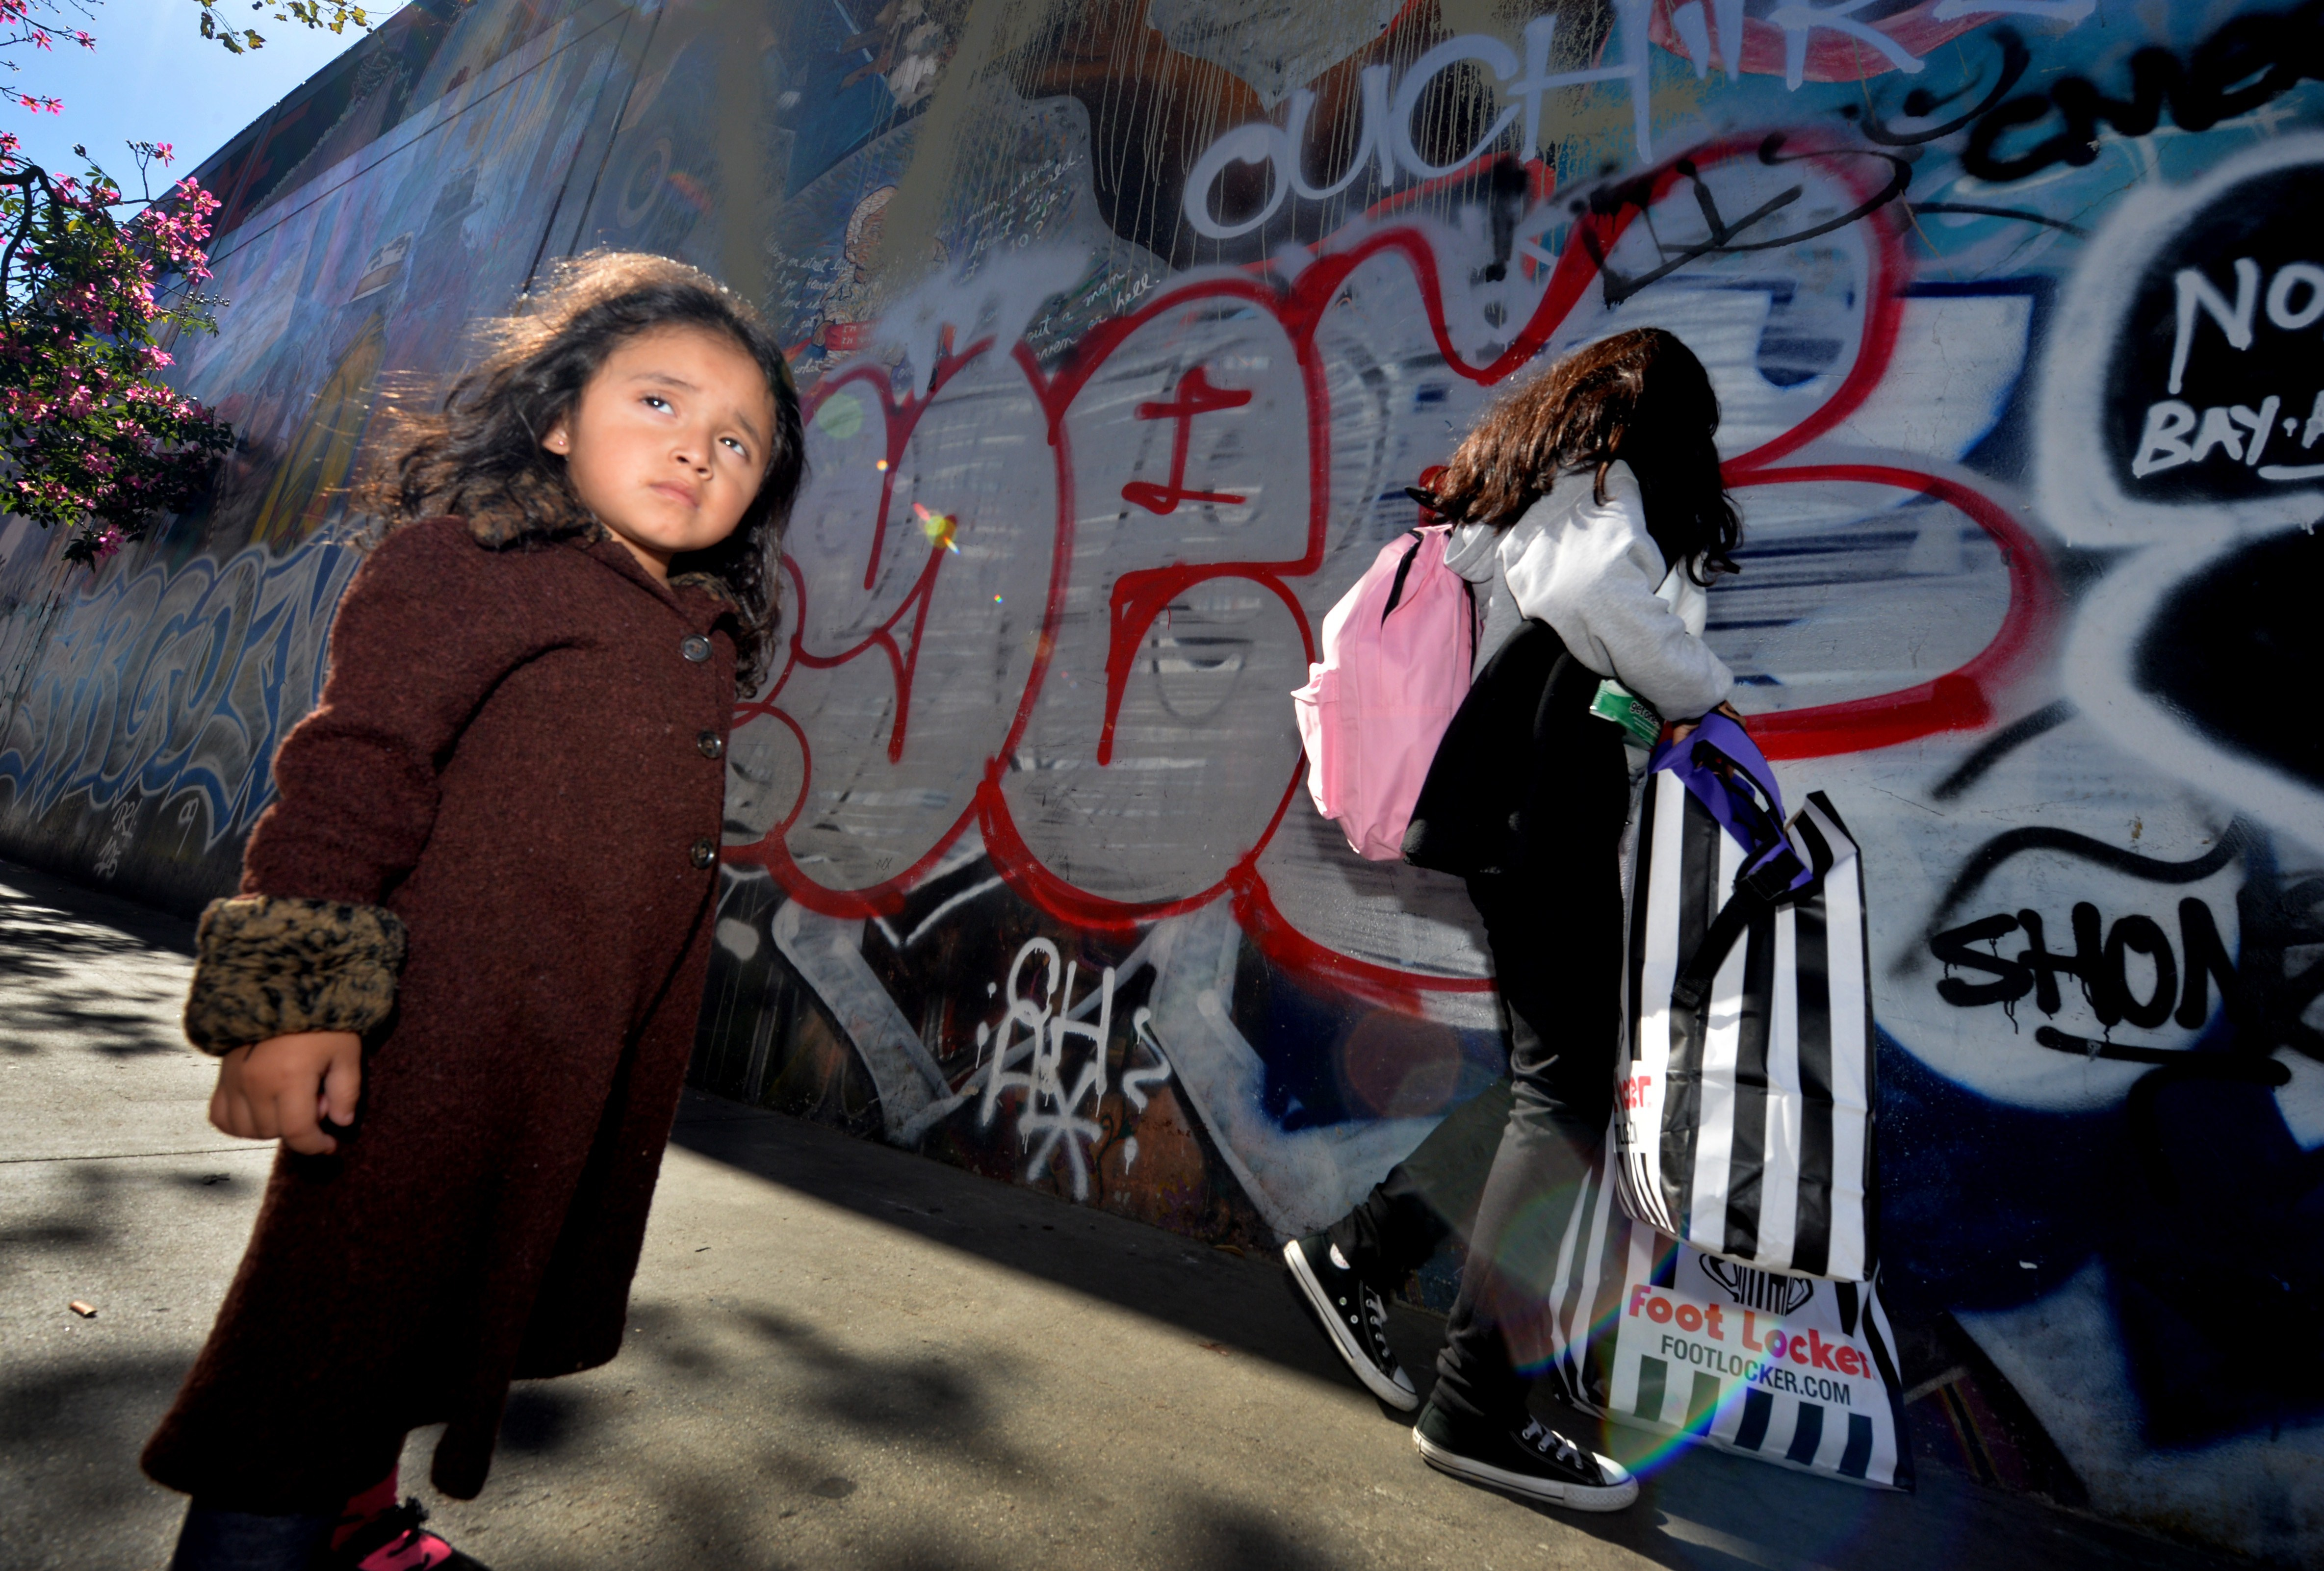 Three year old Saria Amaya (L) waits with her mother after receiving shoes and school supplies during a charity event to help more than 4,000 underprivileged children at the Fred Jordan Mission in the Skid Row area of Los Angeles on October 2, 2014.